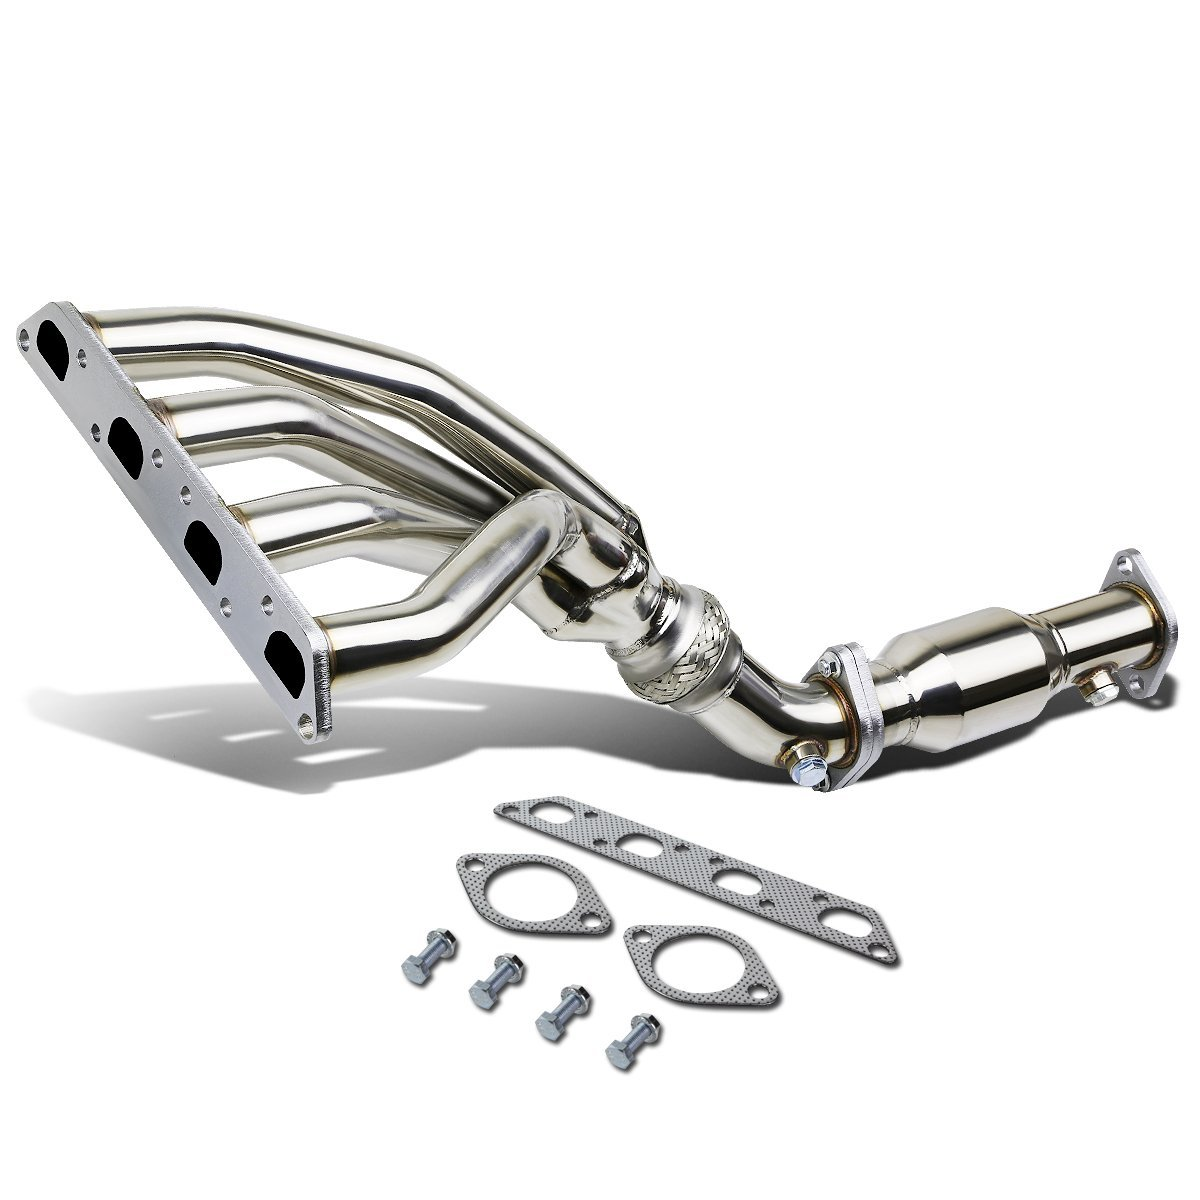 DNA MOTORING HDS-MC02-T2 Stainless Steel Exhaust Header Manifold